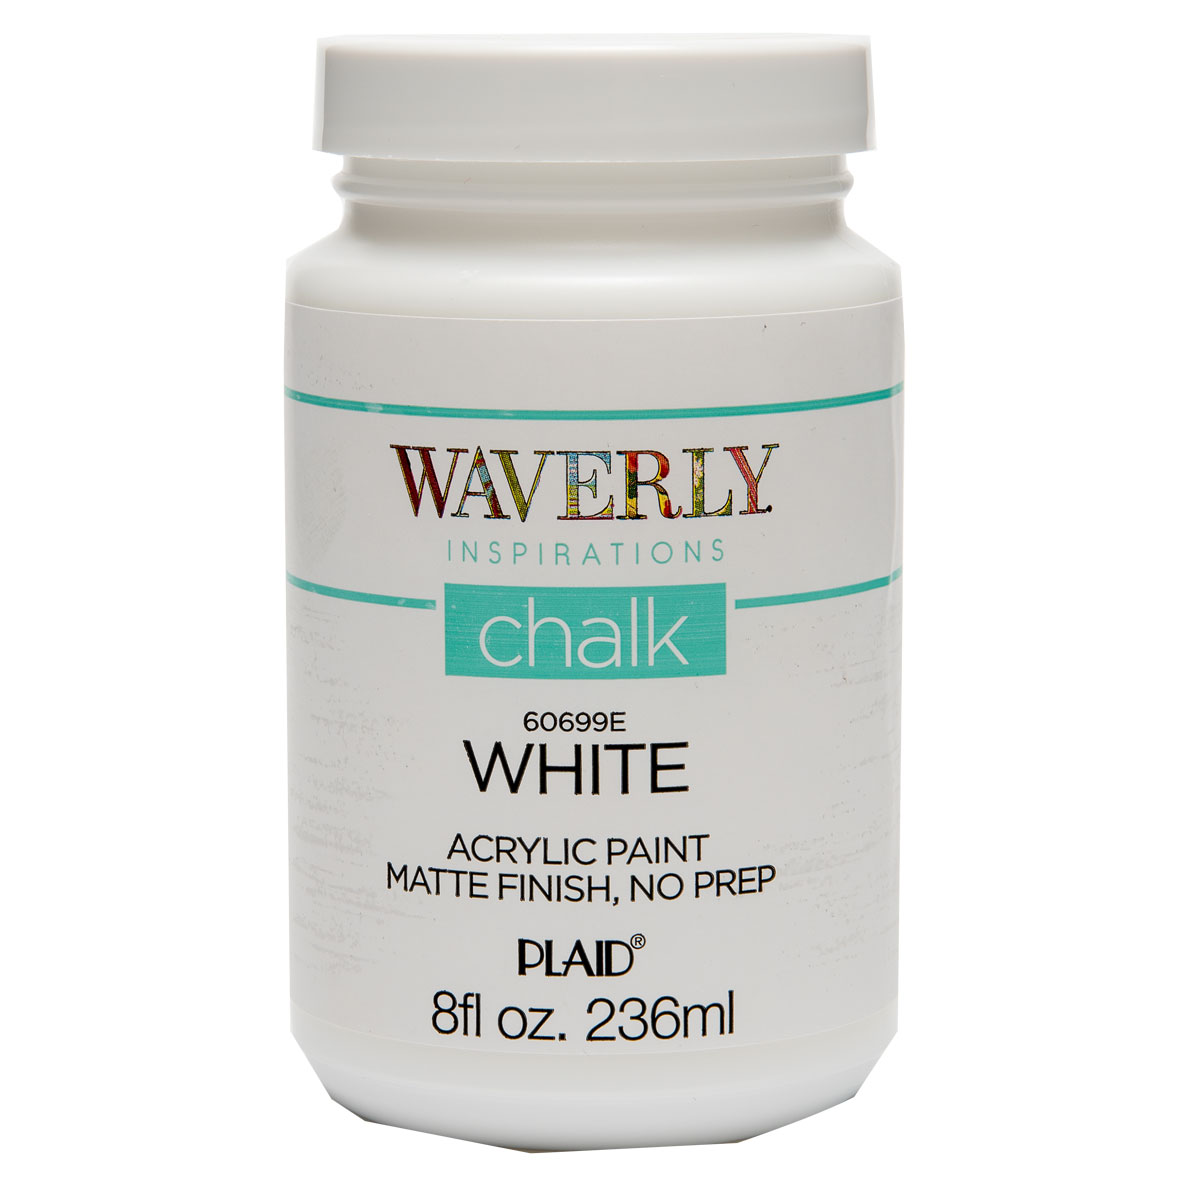 Waverly ® Inspirations Chalk Acrylic Paint - White, 8 oz.